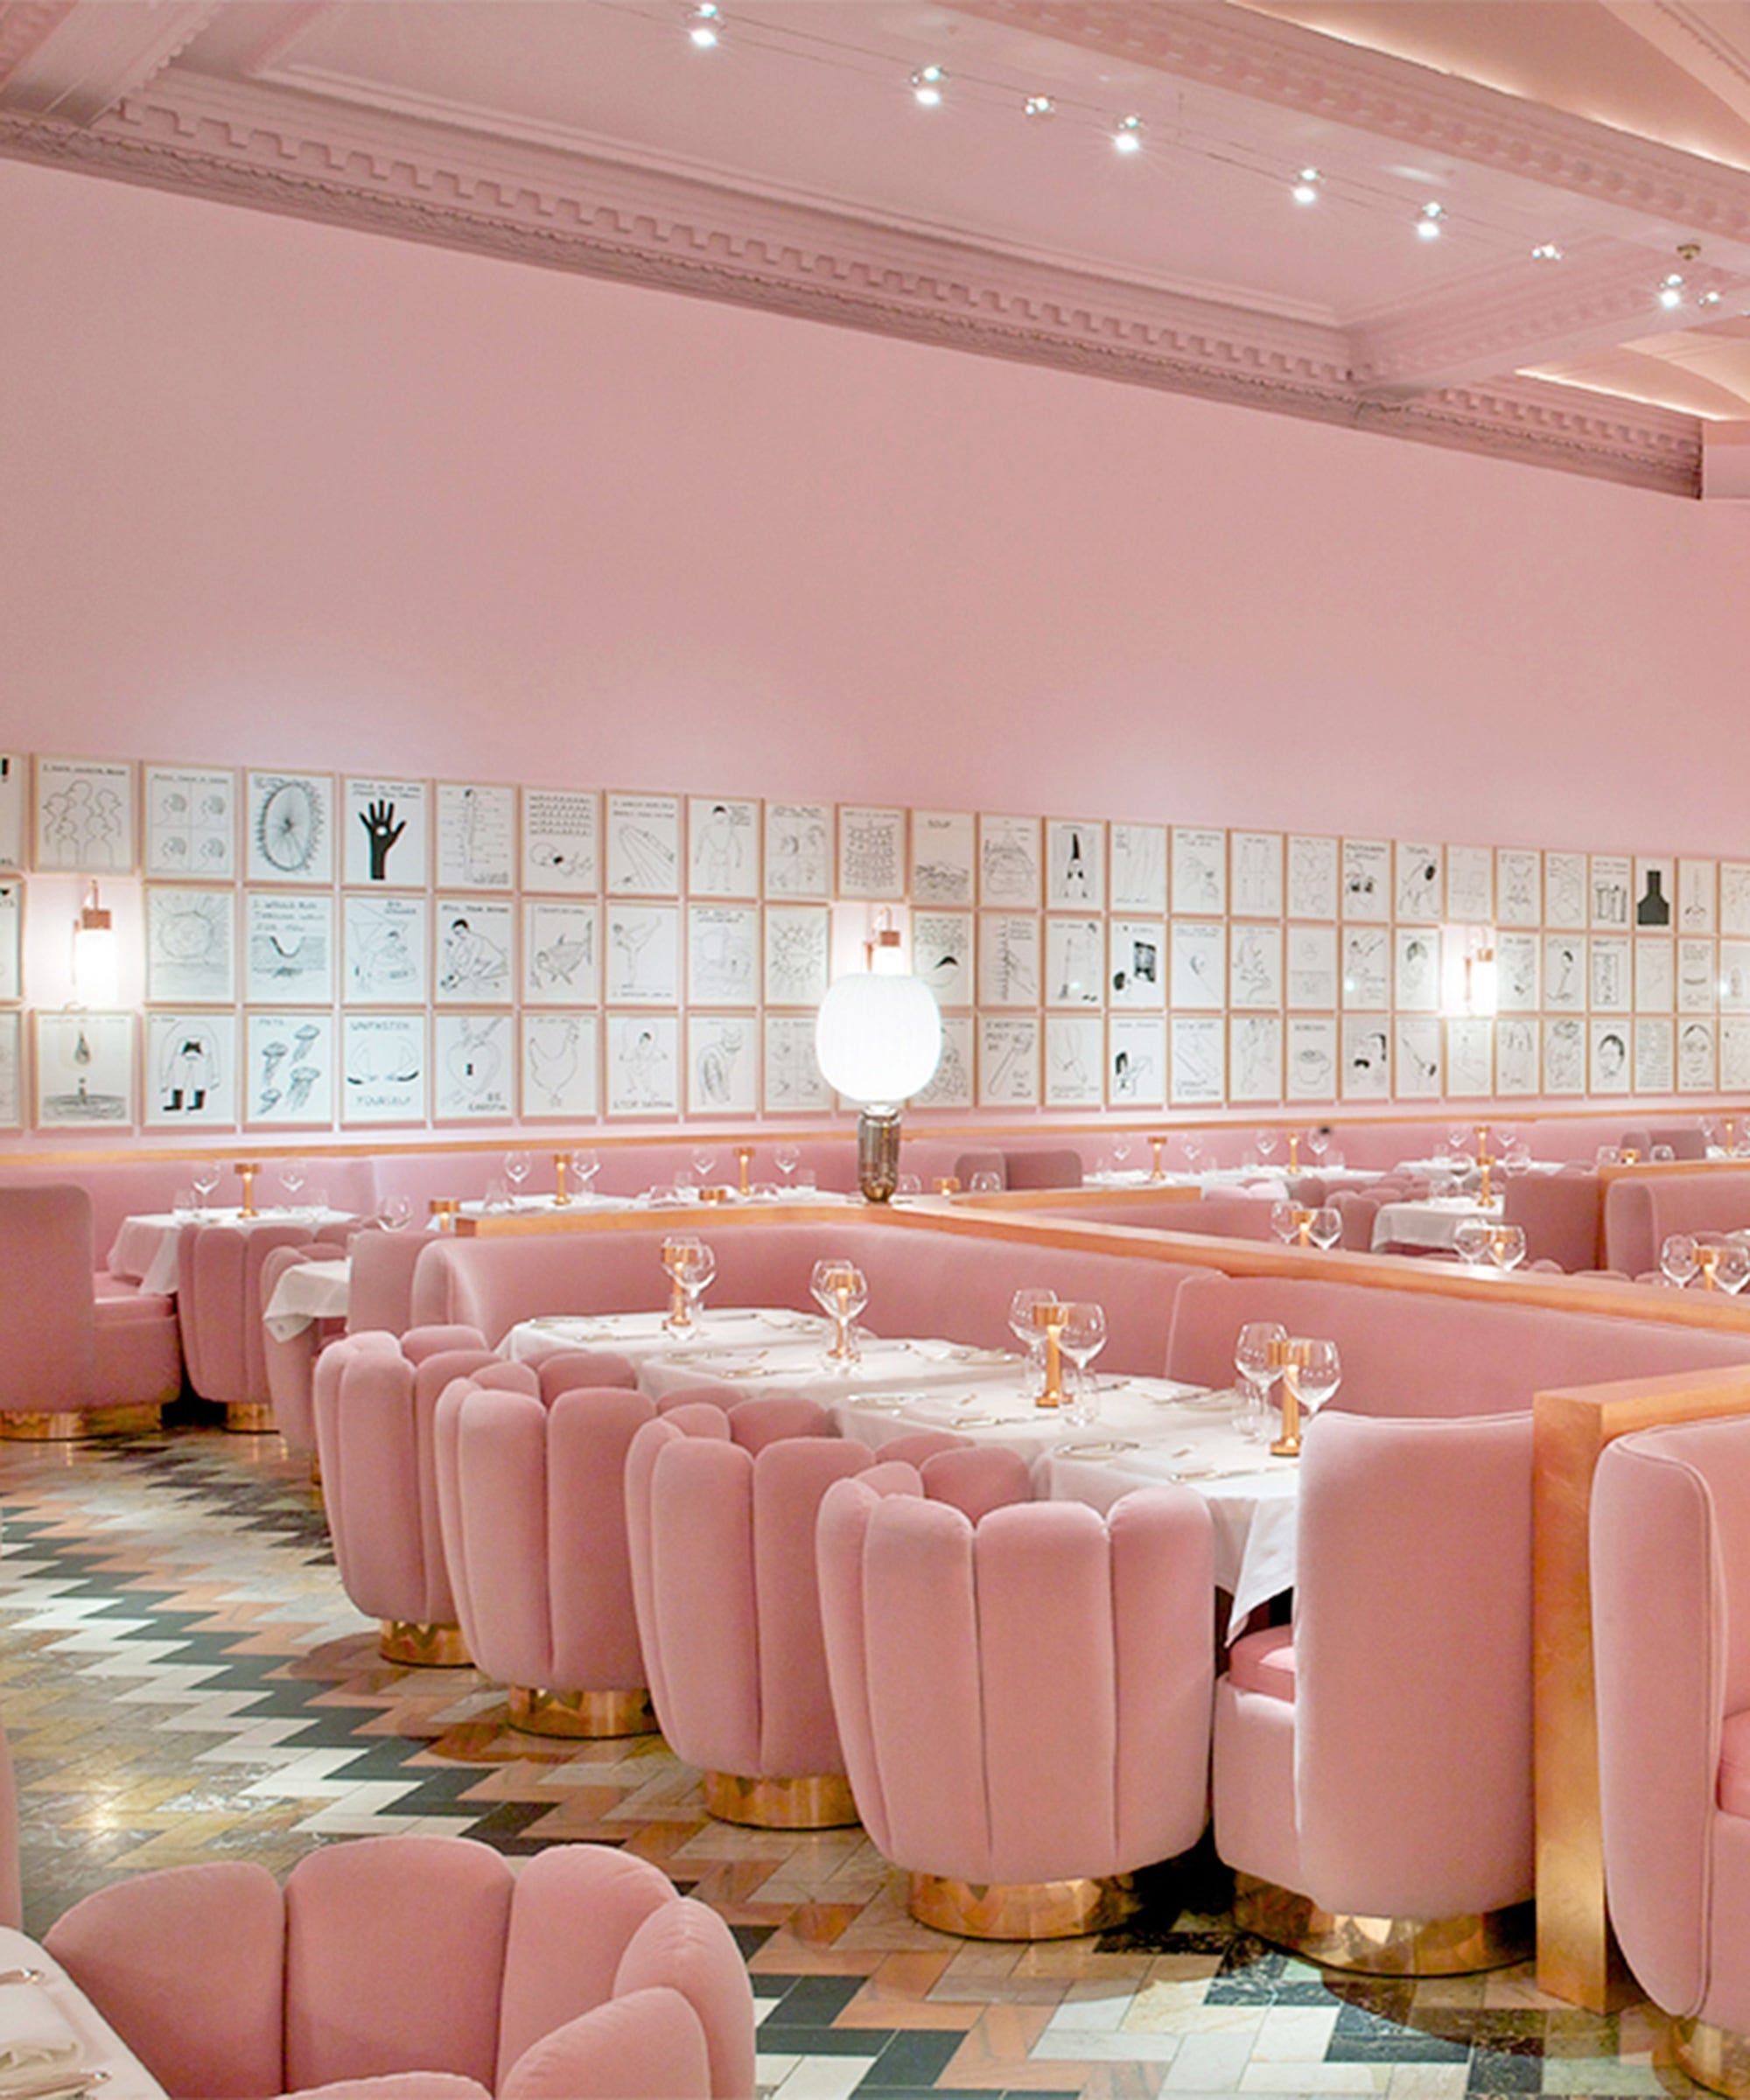 10 Millennial Pink Places To Go Just For The Instagram